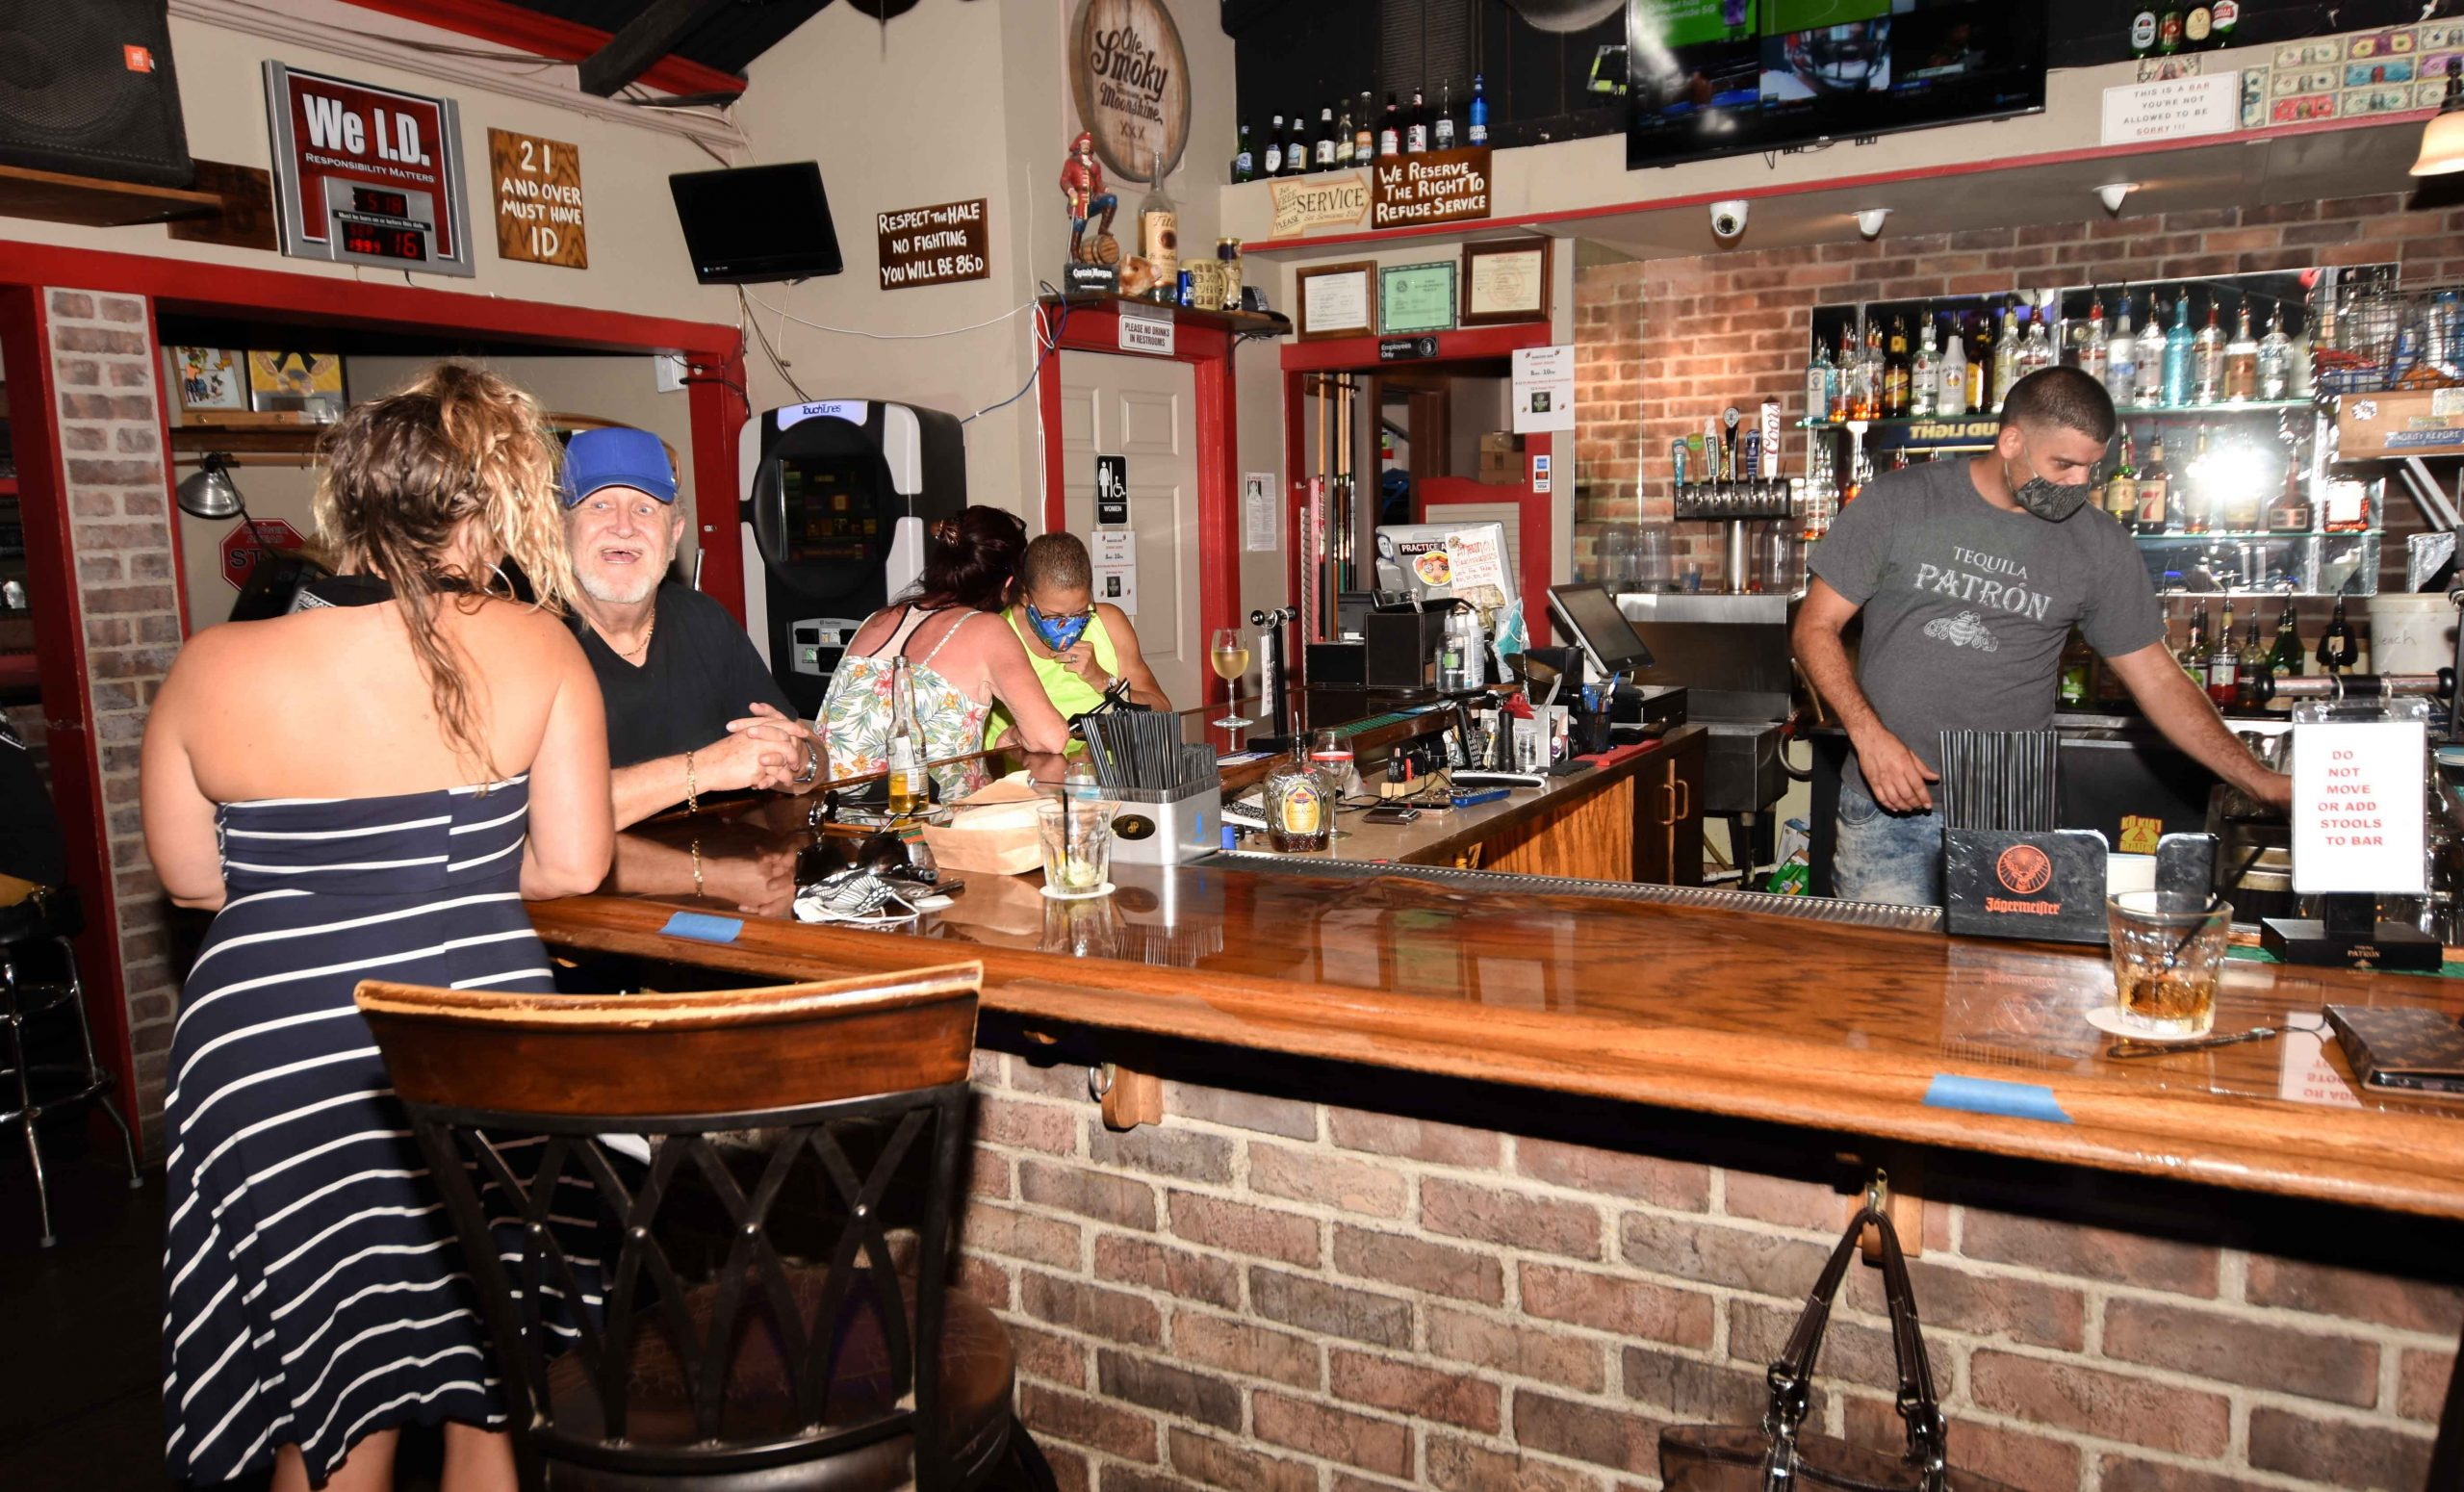 Ige Denies Victorino's Proposal to Increase Occupancy Limits at Bars and Restaurants